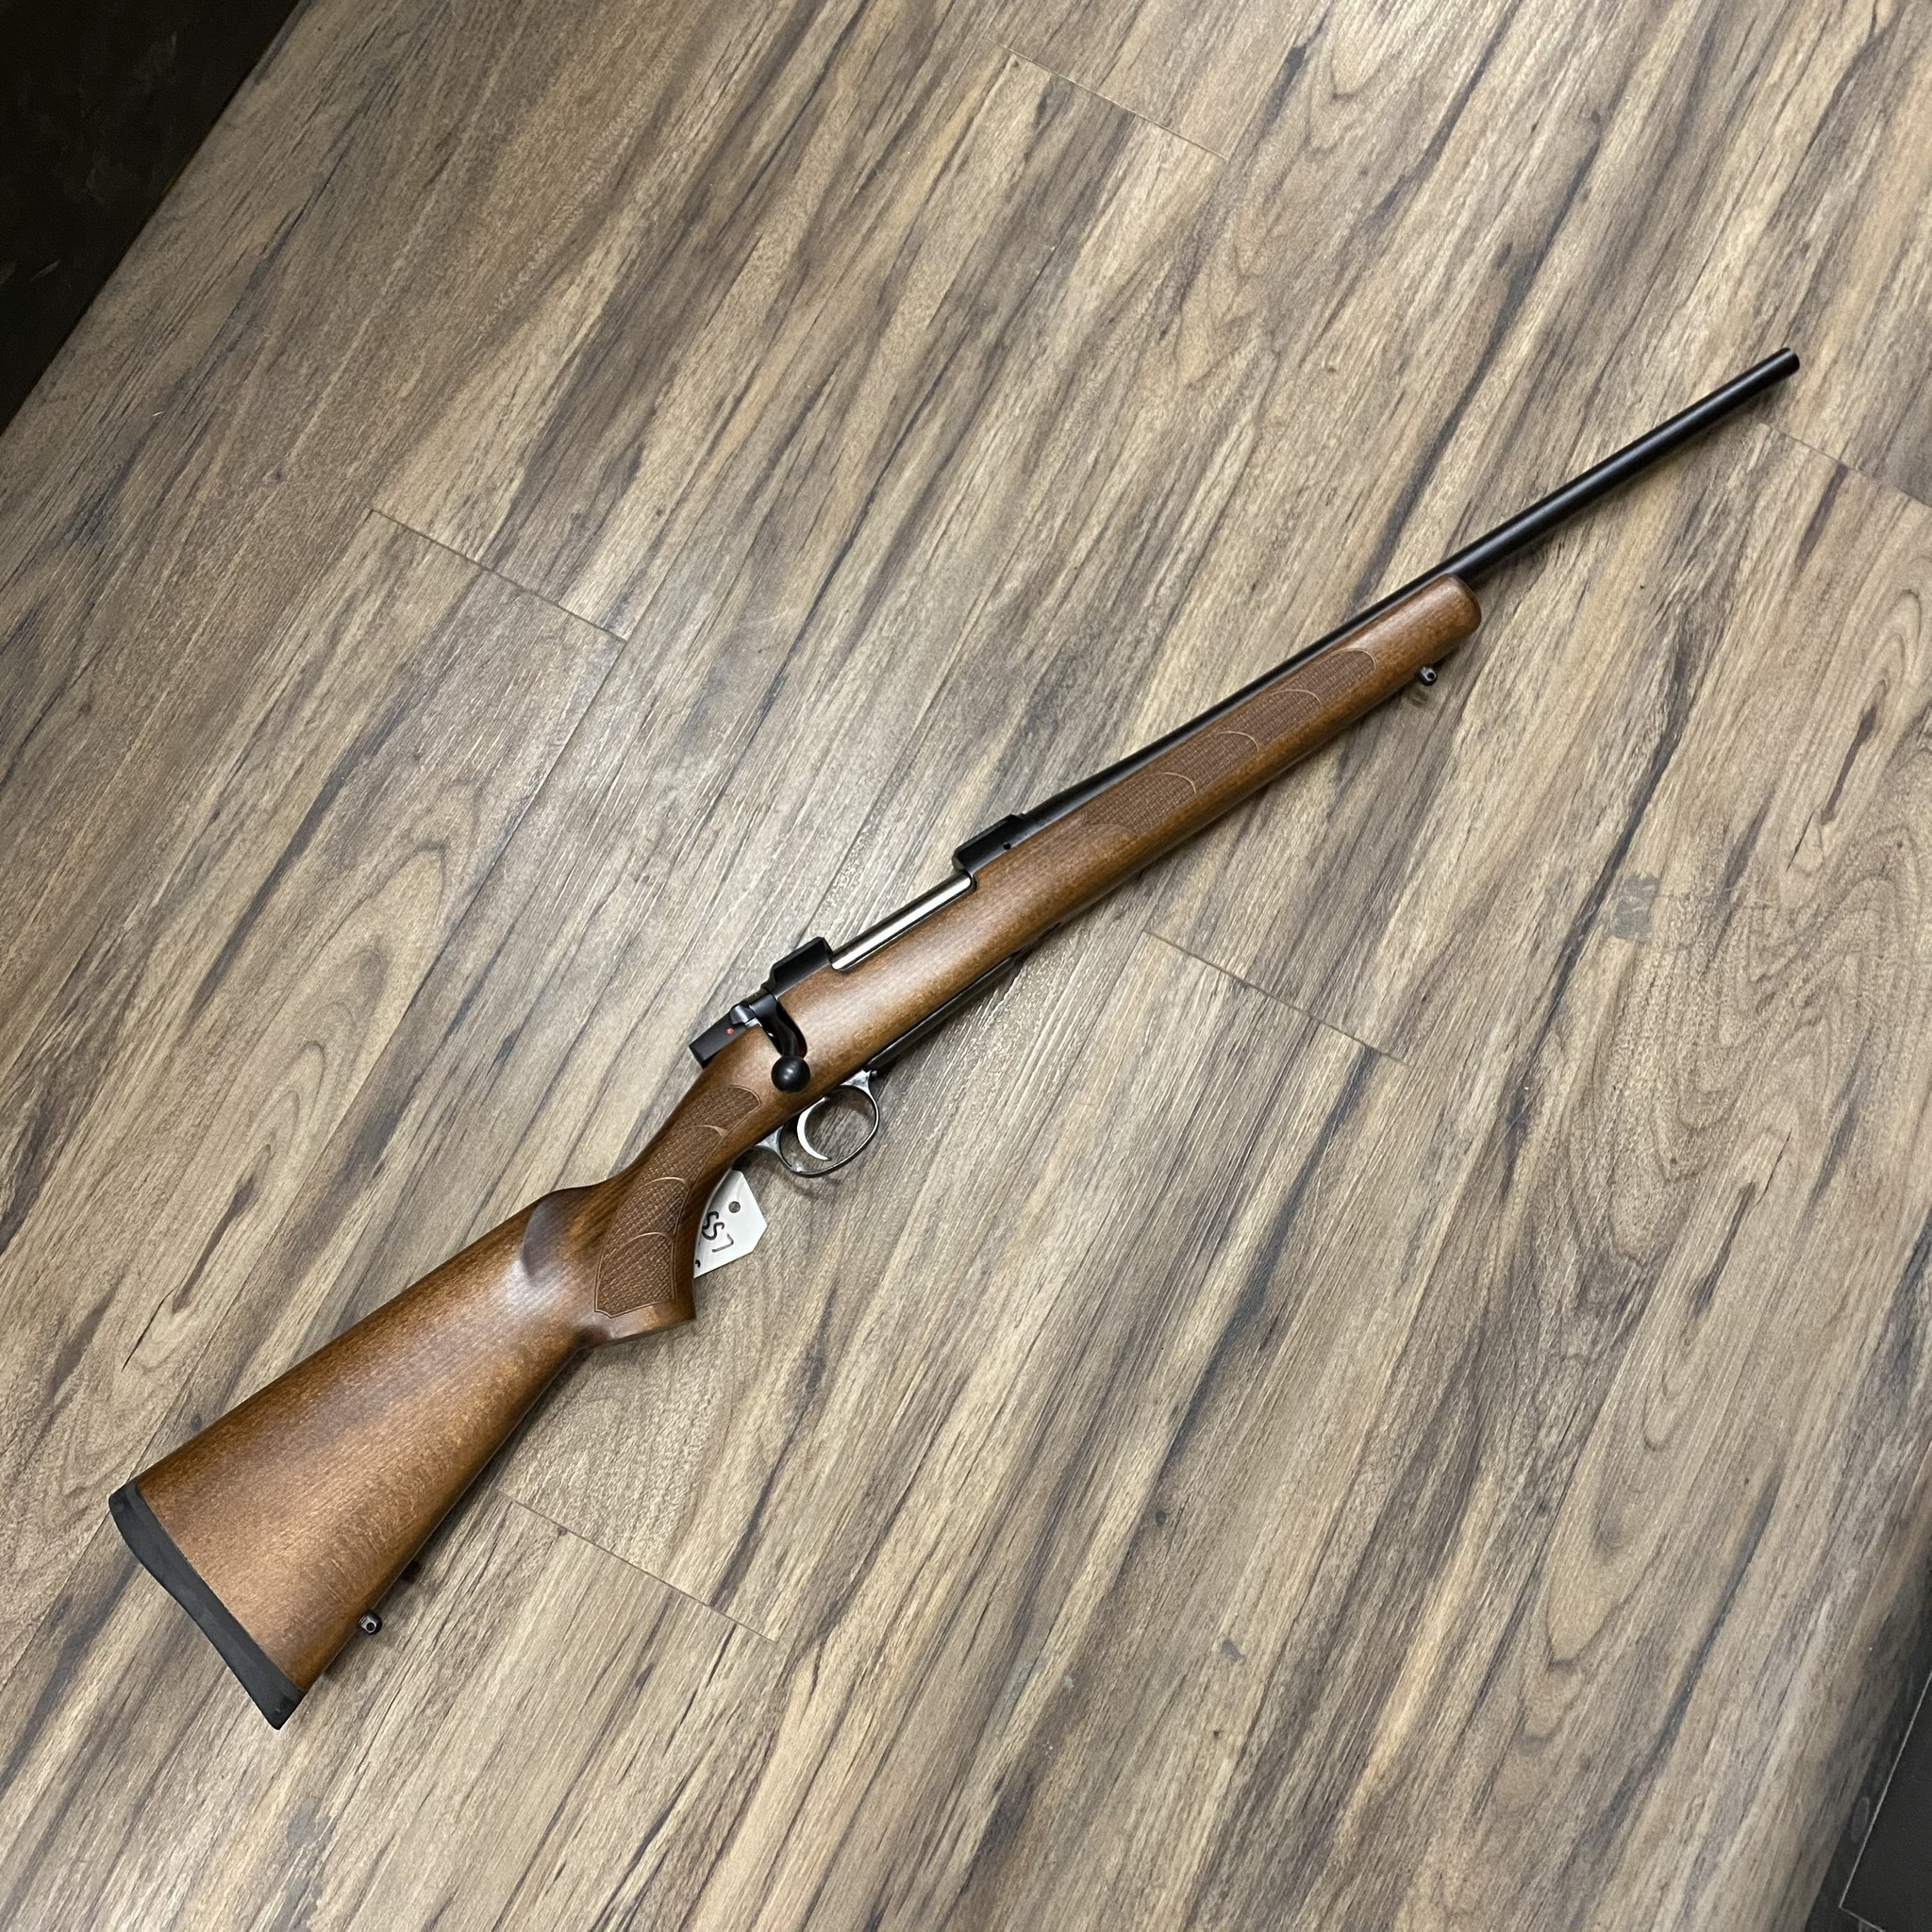 CZ CZ 557 SPORTER RIFLE, 30-06 SPRG, WOOD STOCK